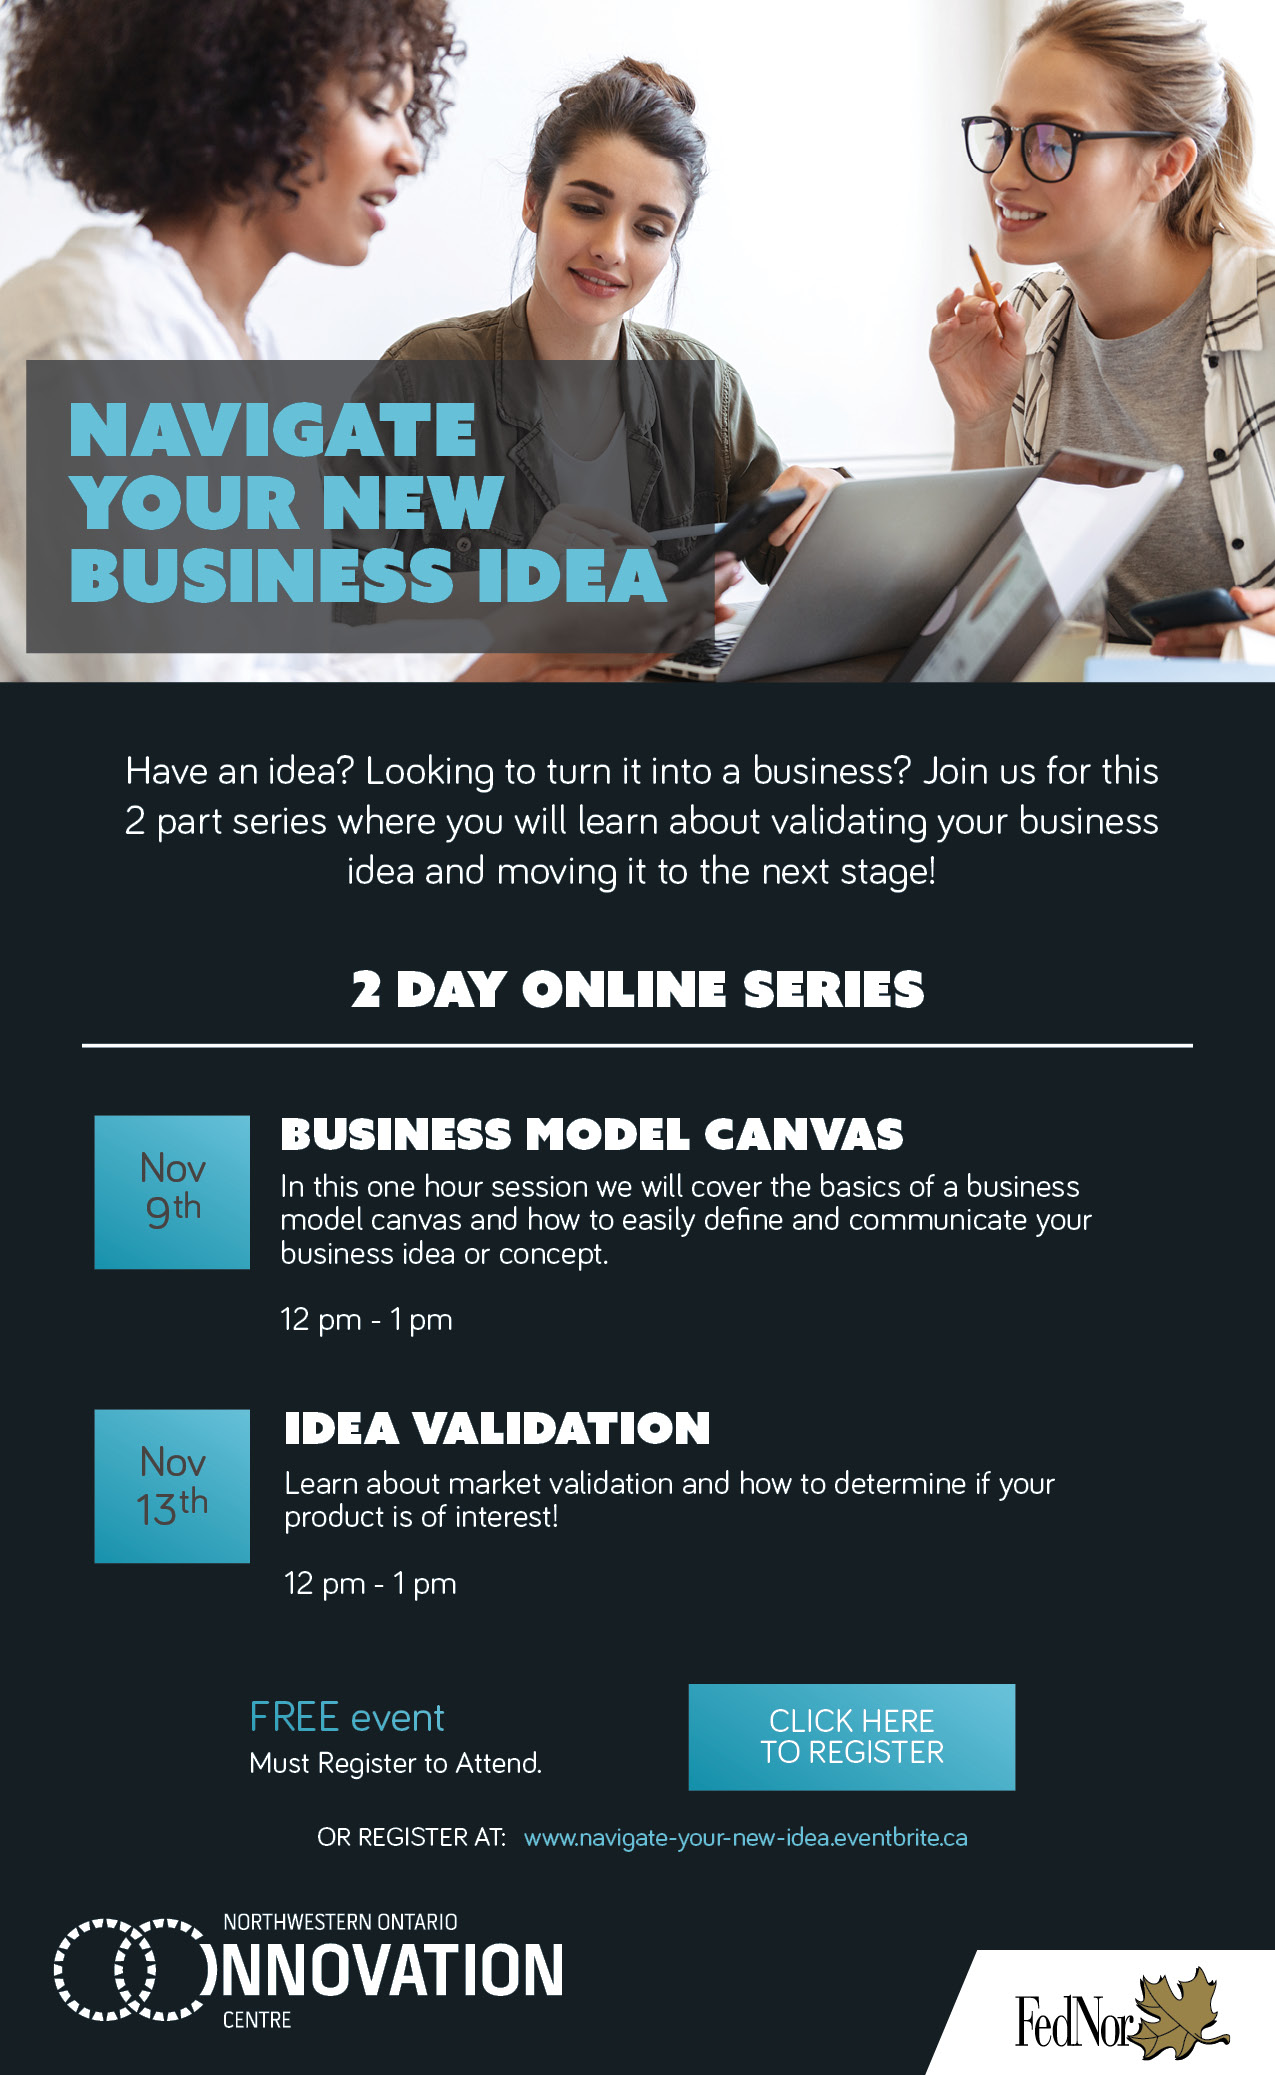 navigate-your-new-business-idea